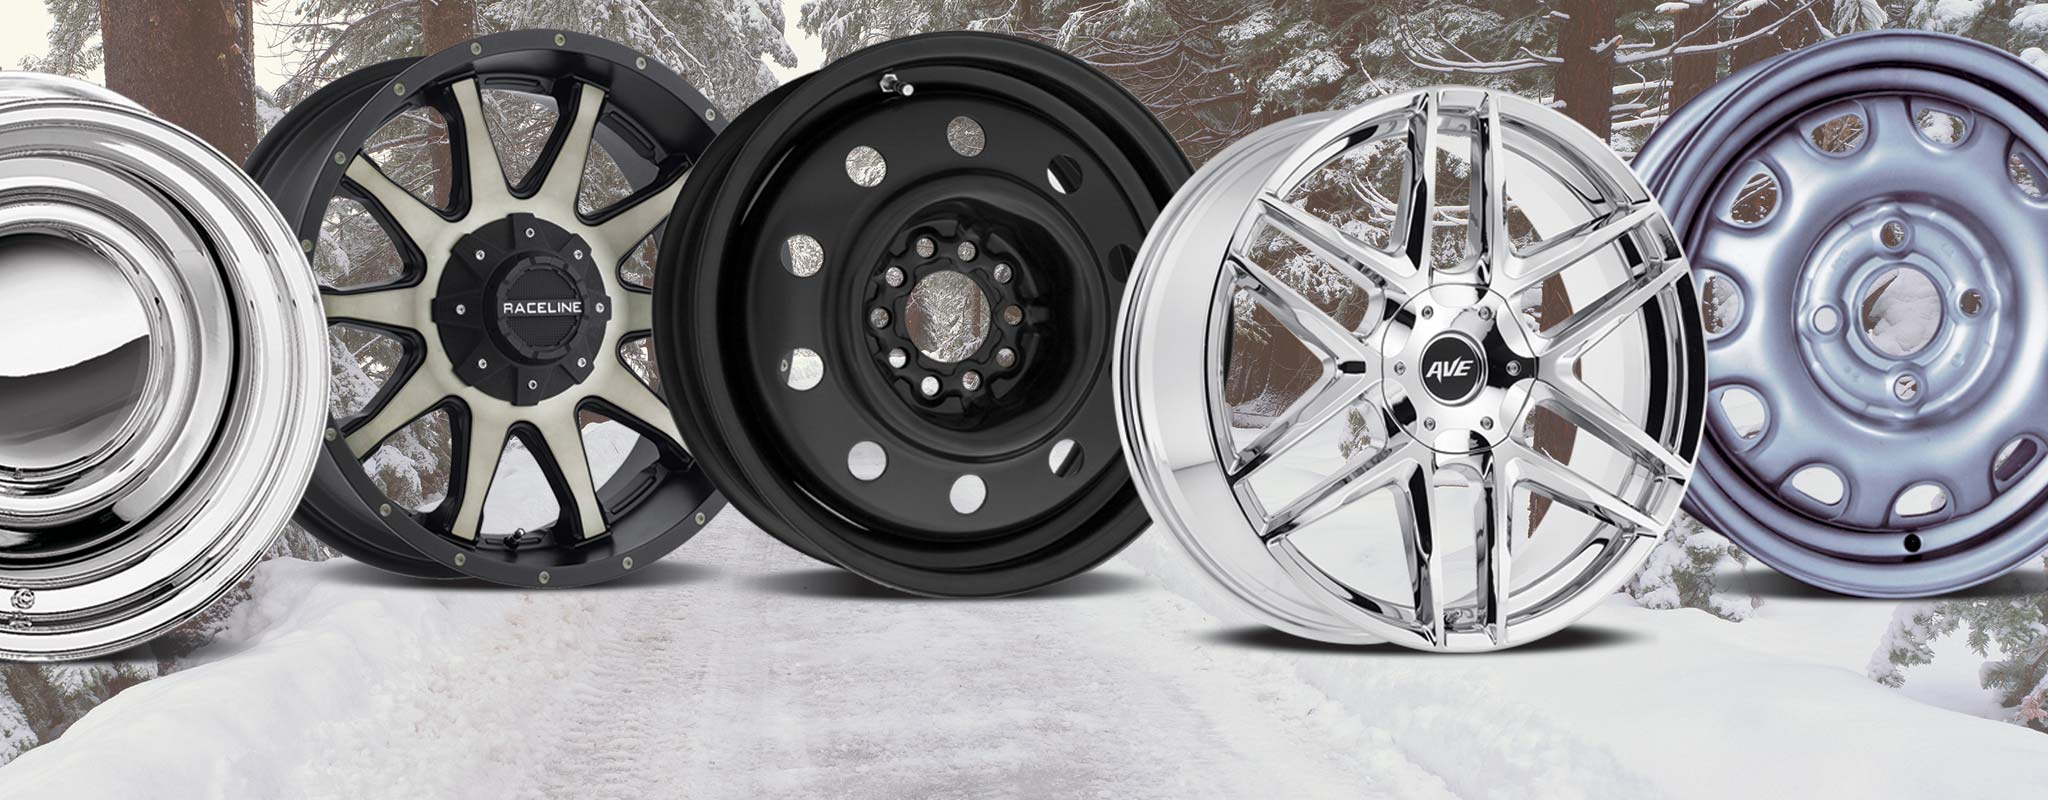 A selection of aluminum and steel wheels.